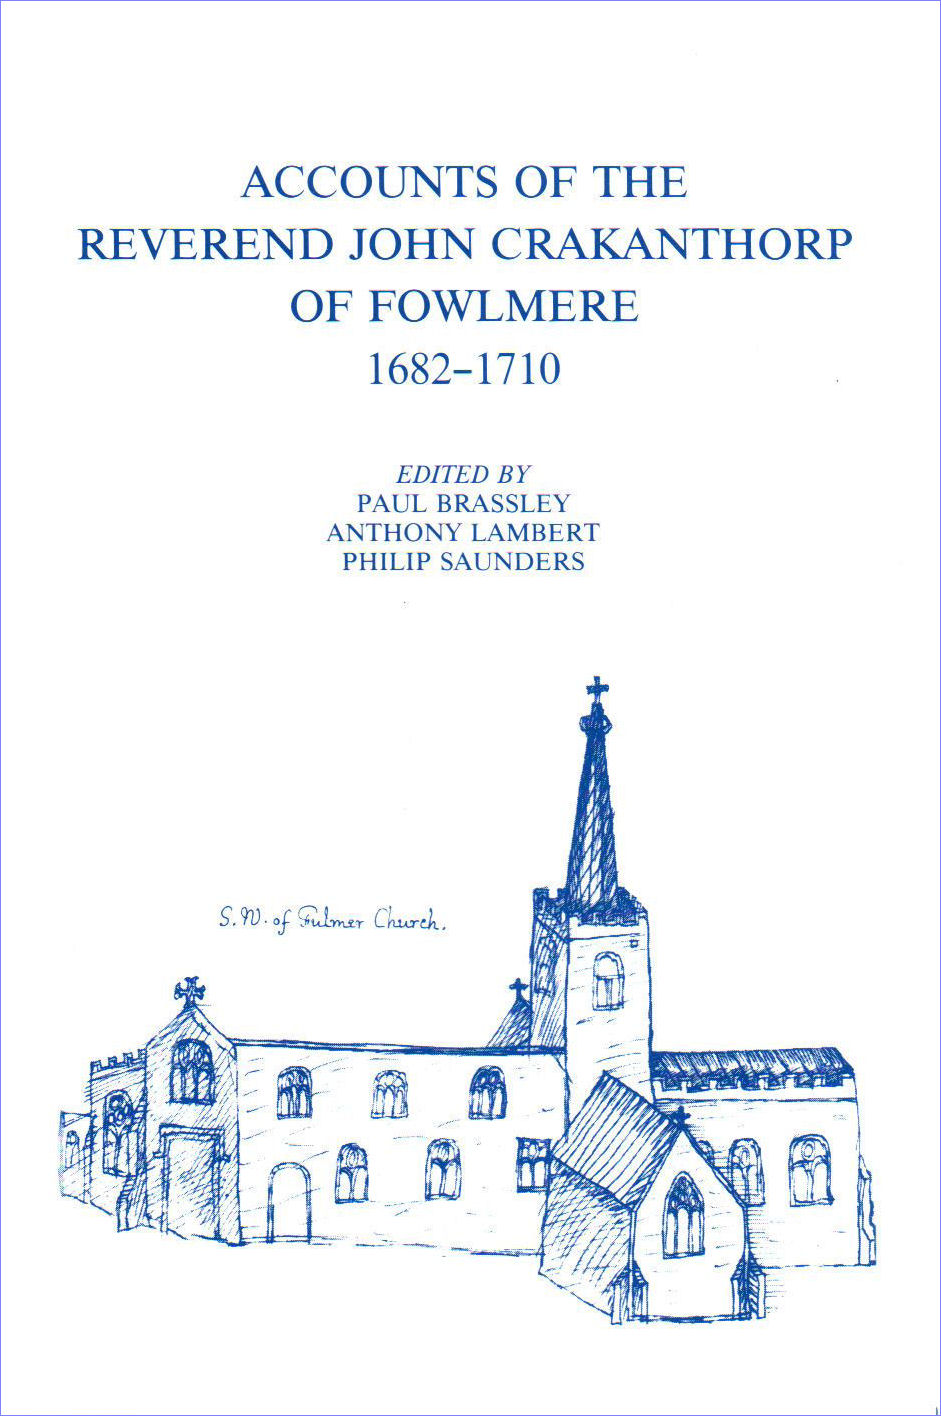 8. Accounts of the Reverend John Crakanthorp of Fowlmere, 1682-1710. Edited by Paul Brassley, Anthony Lambert and Philip Saunders.